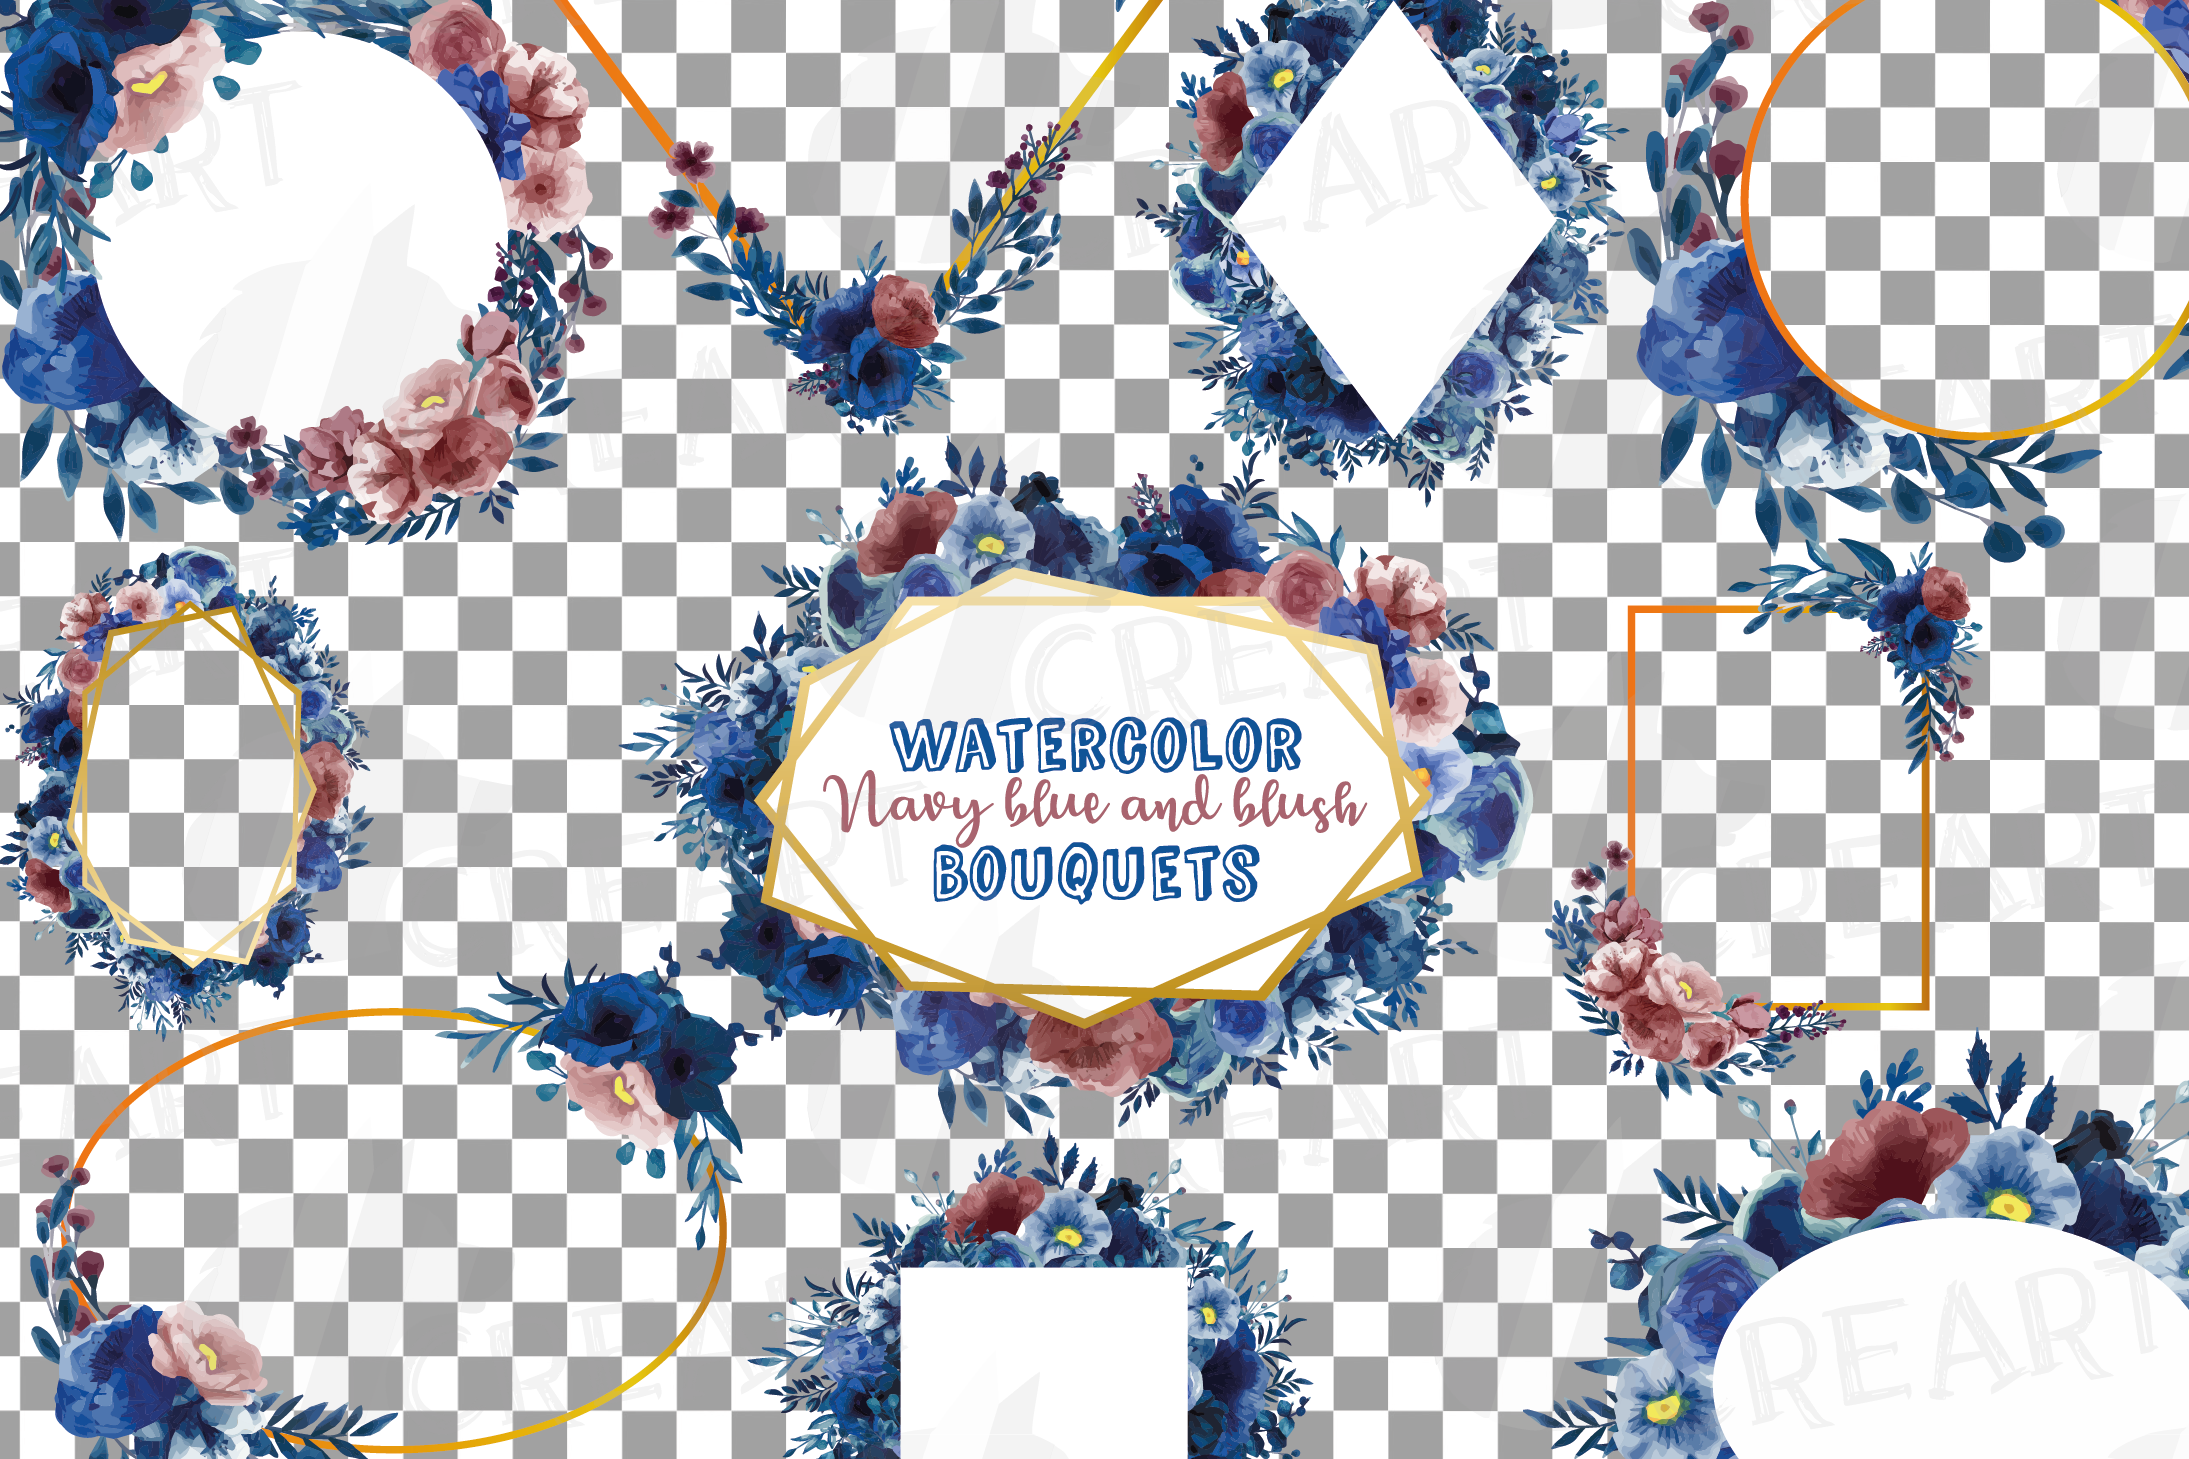 Watercolor elegant navy blue and blush floral borders vector example image 15